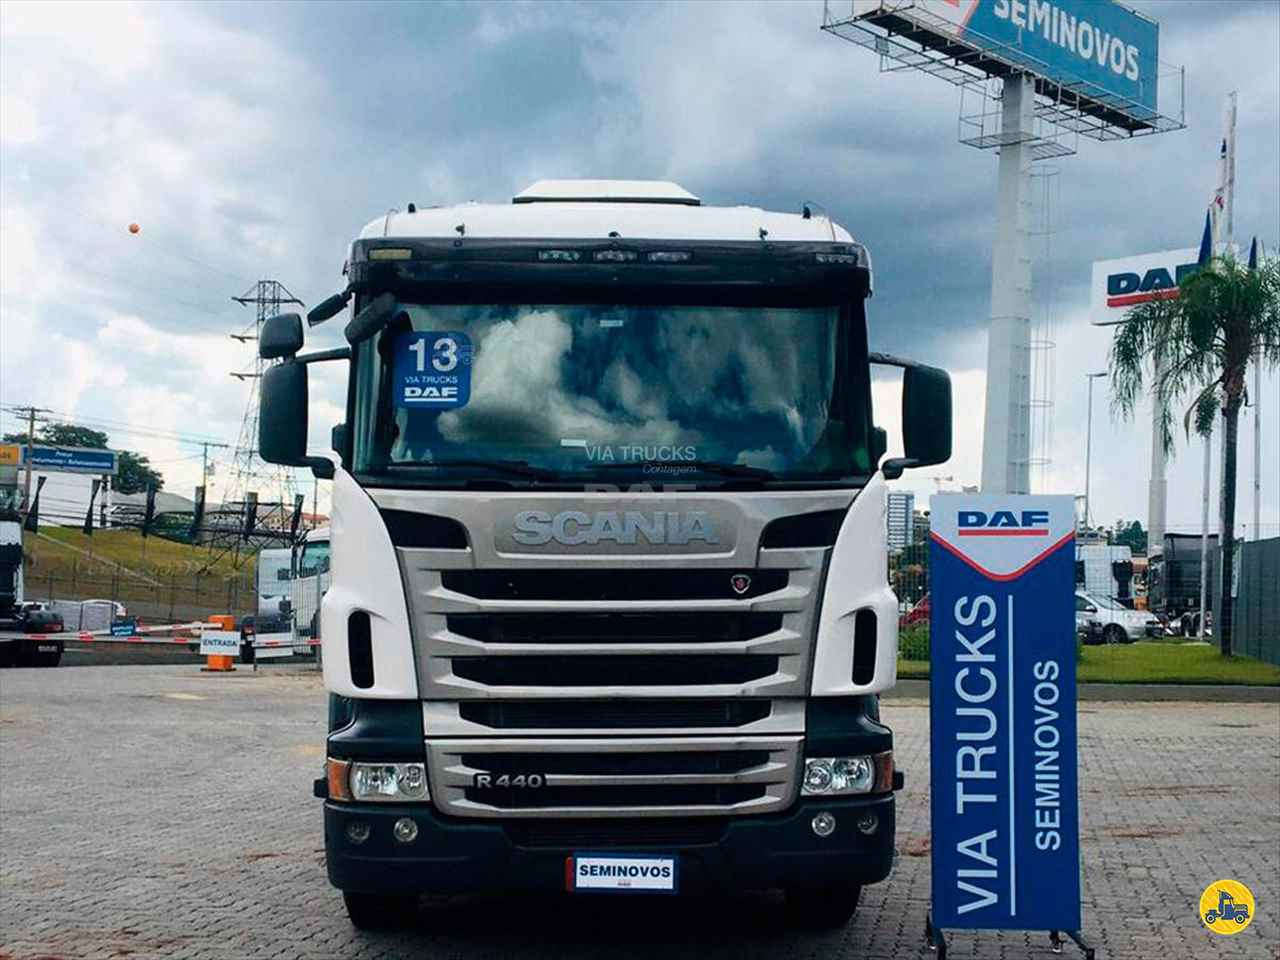 SCANIA SCANIA 440 492559km 2013/2013 Via Trucks - DAF